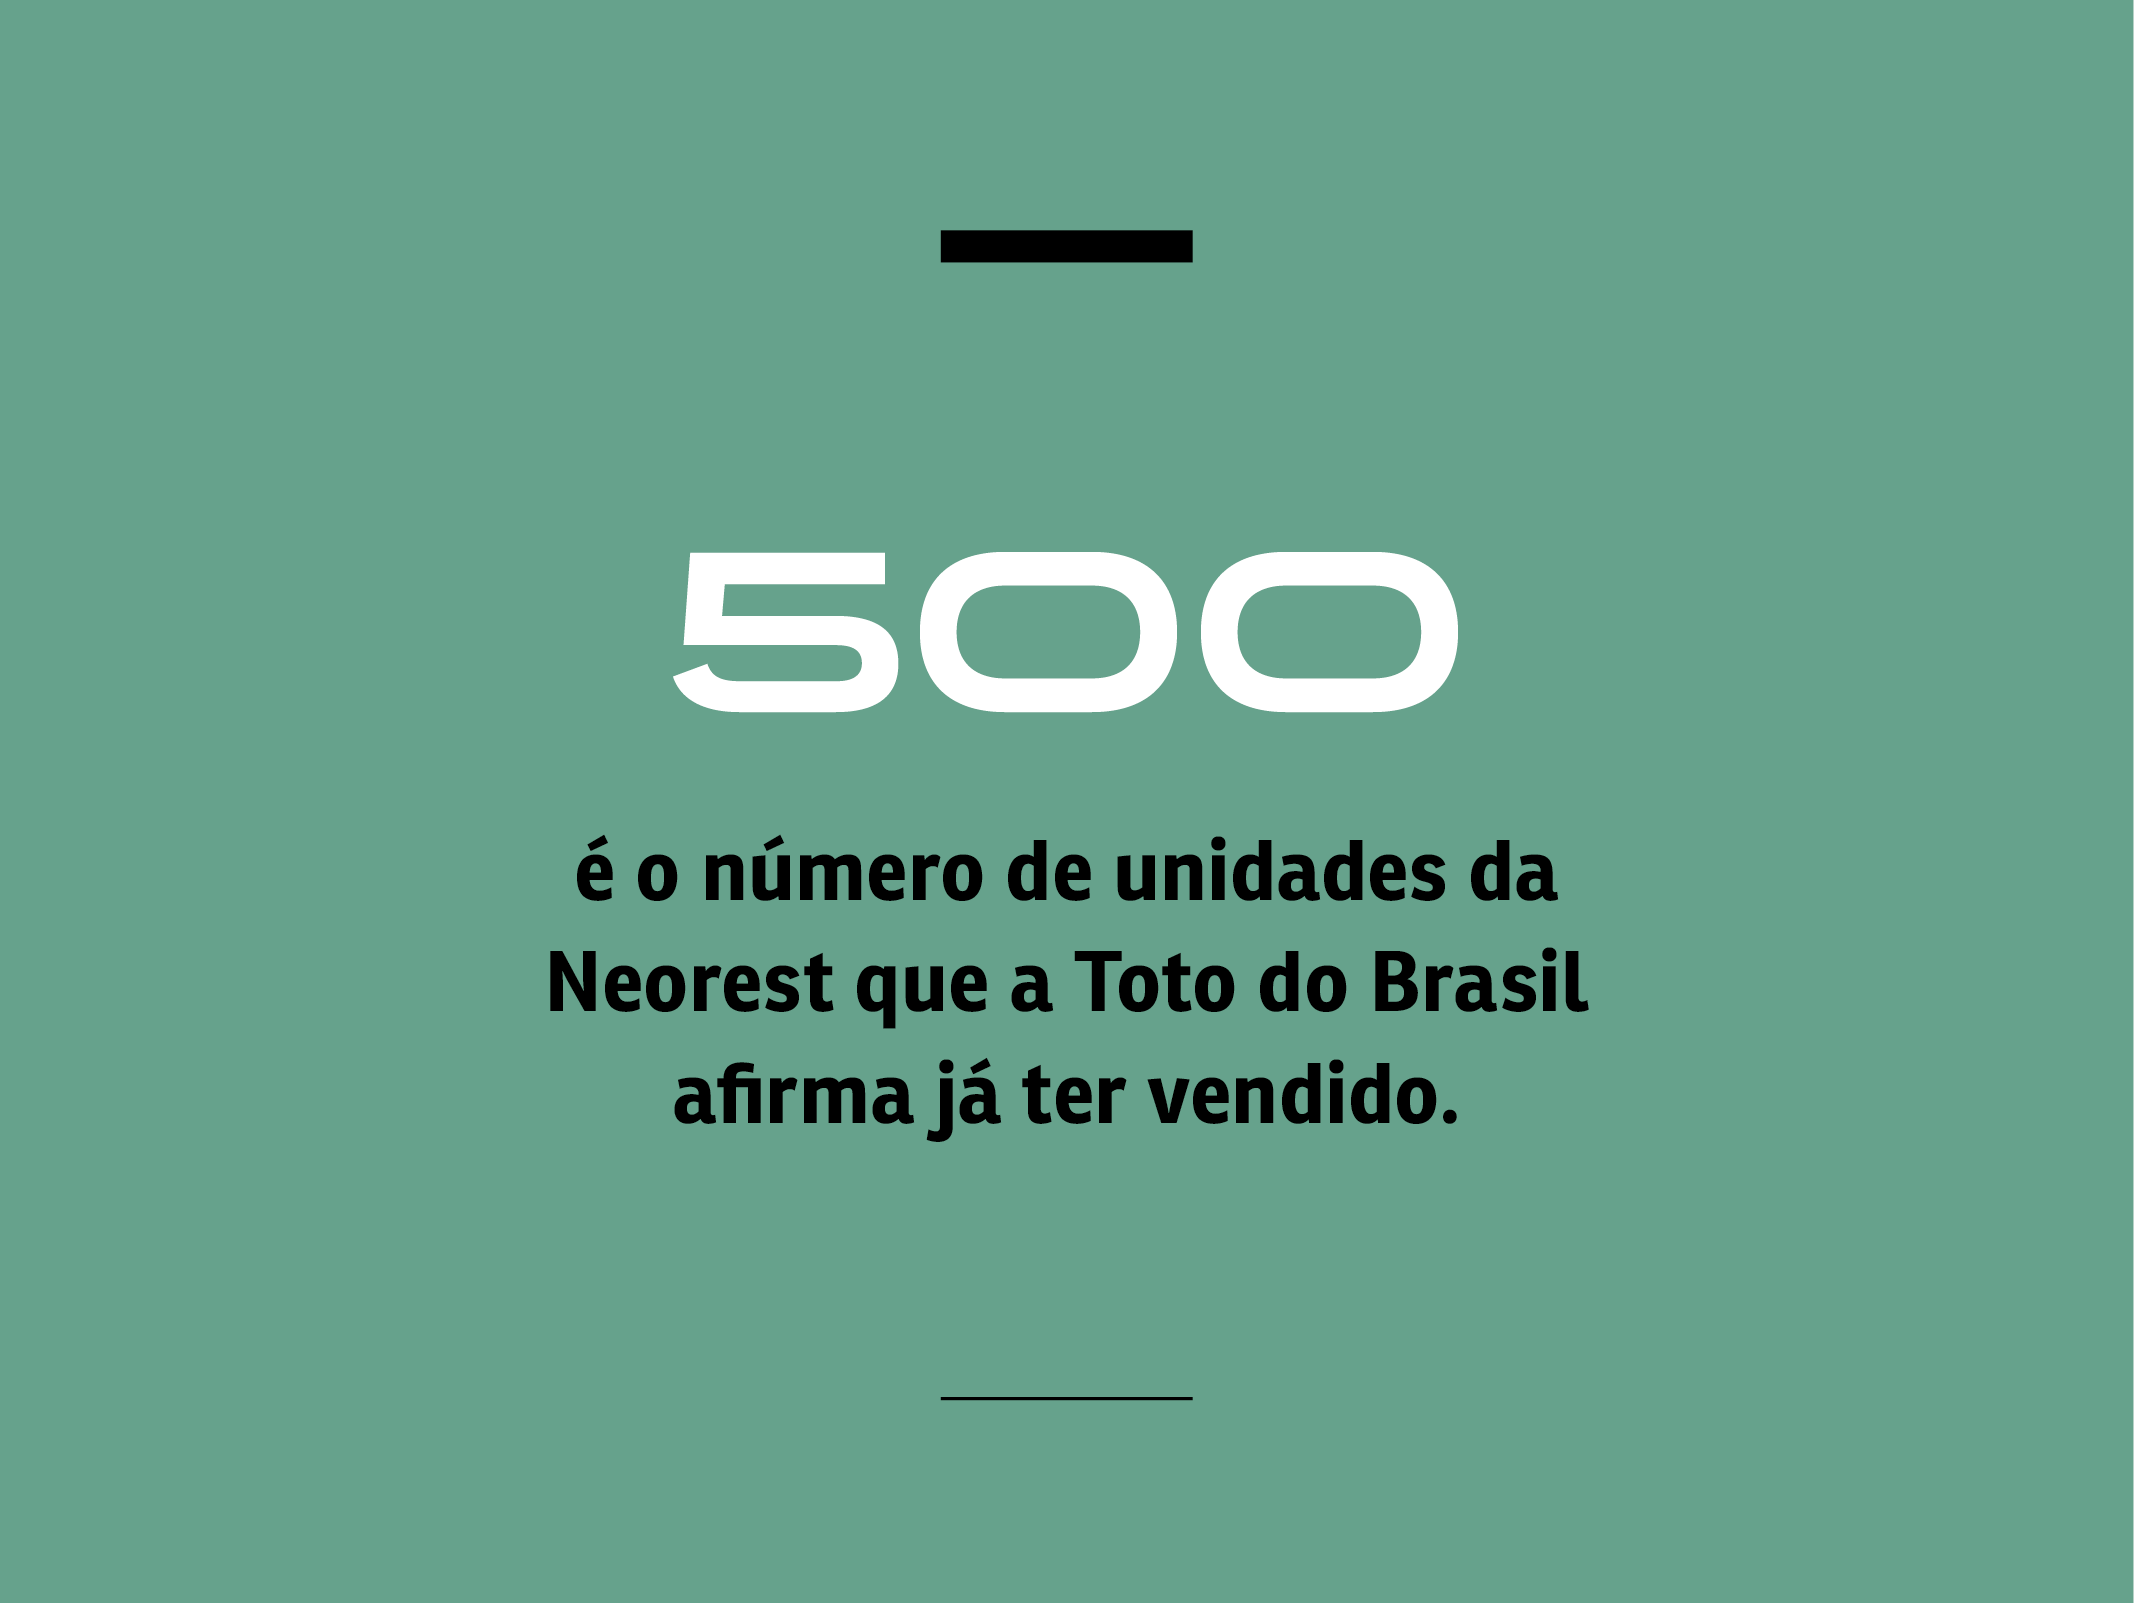 500 - é o número de neorests vendidas